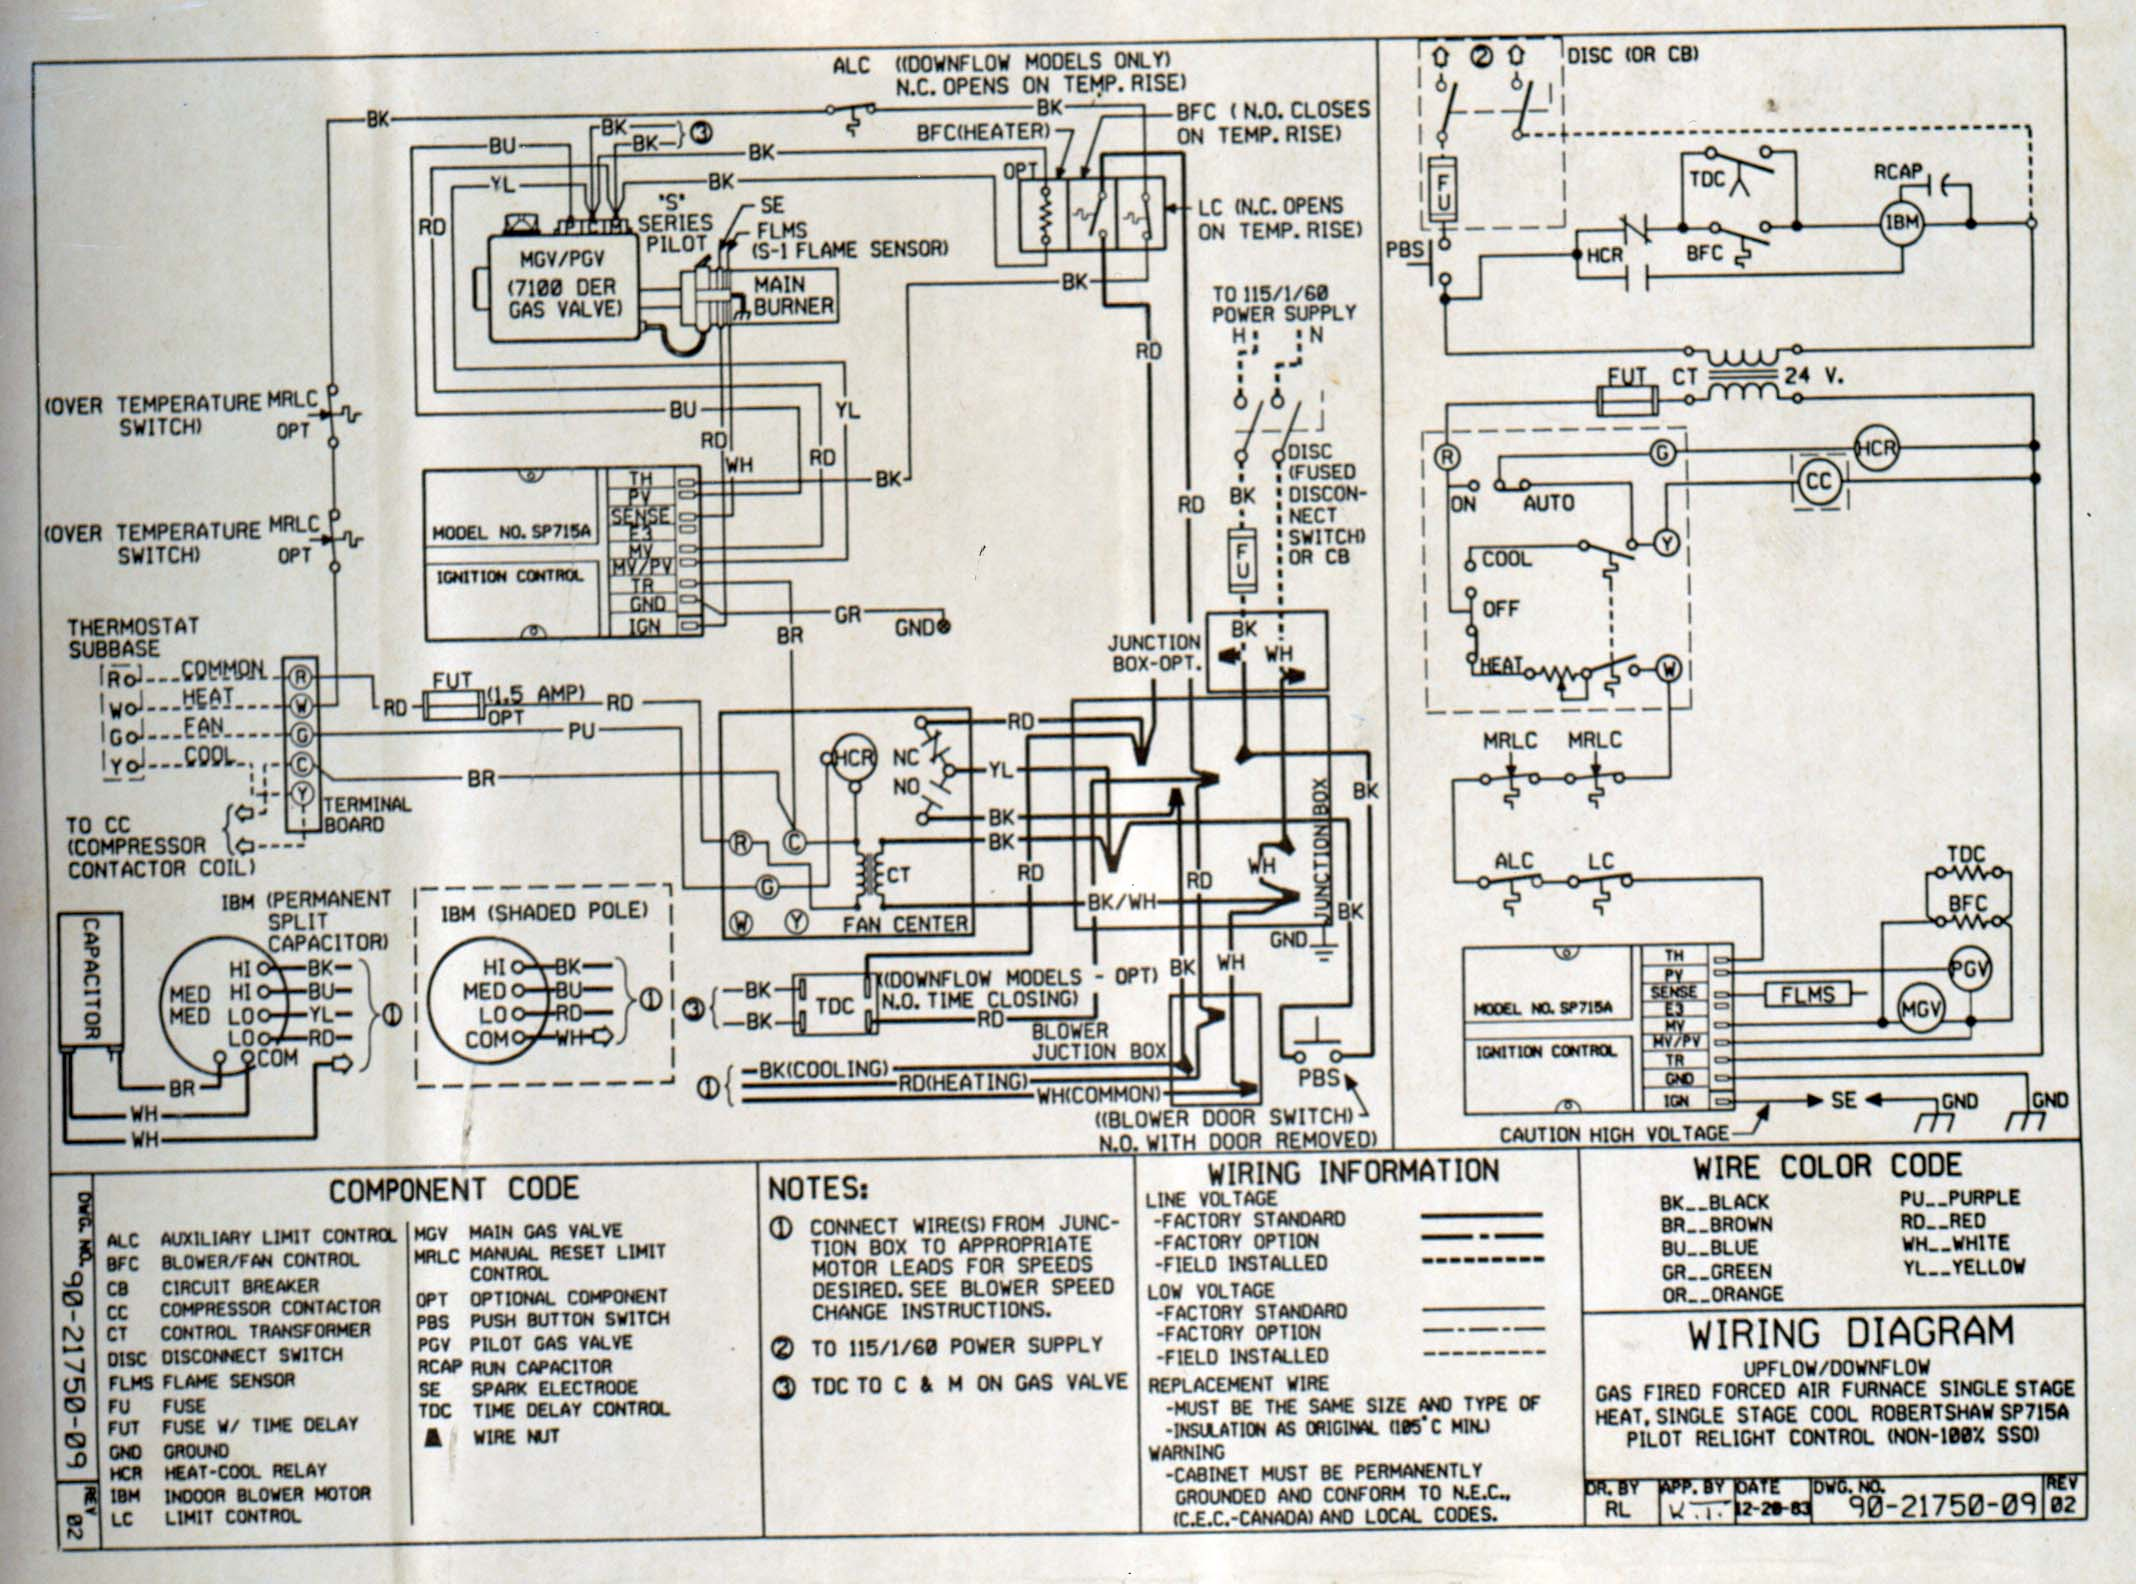 century furnace motor wiring diagram house furnace motor wiring diagram